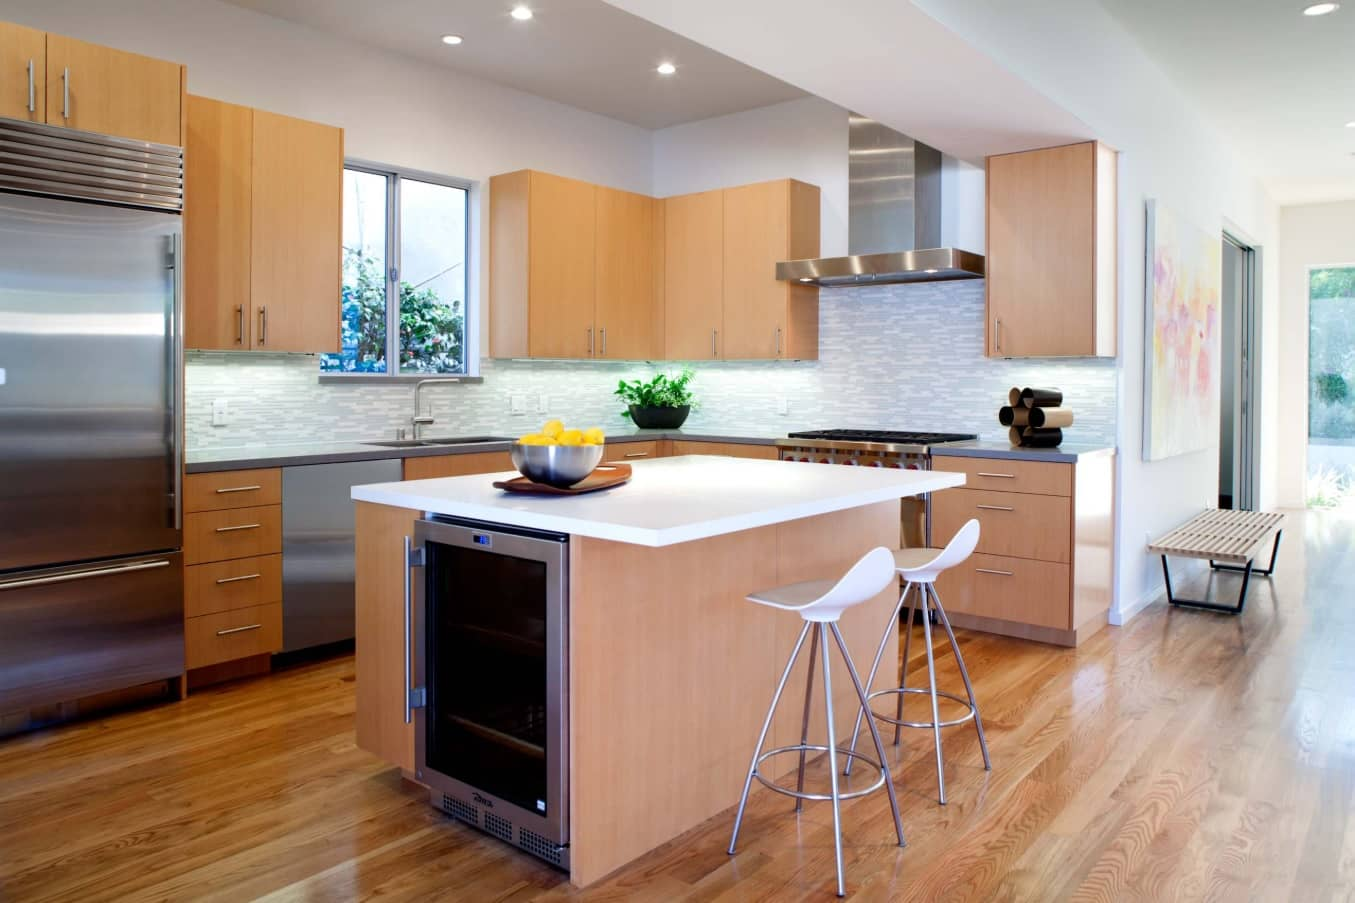 Enhance Home Interior with Stylish Appliances Without Breaking Bank. Nice contemporary designed kitchen with mild wooden tone and laminated floor